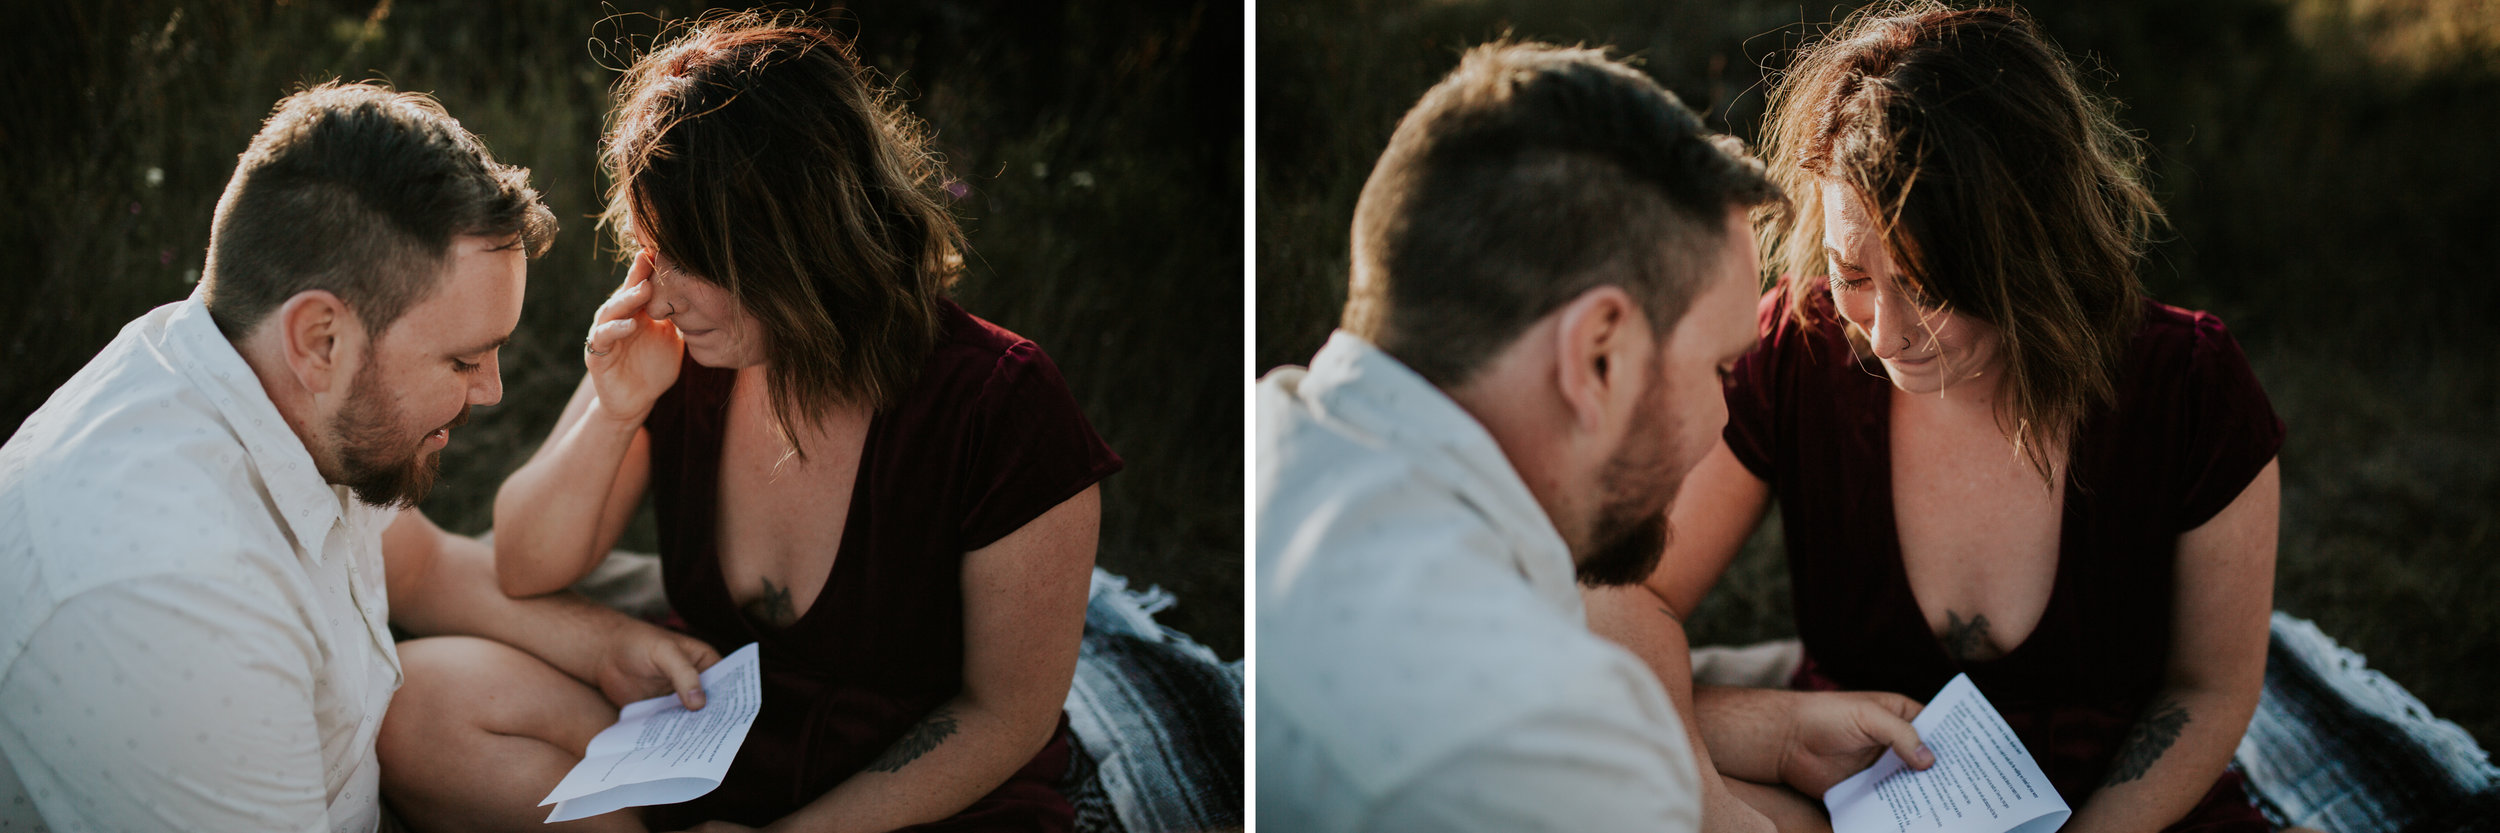 Sarah+Grant+Anniversary+Couple+session+Southern+highlands-7.jpg